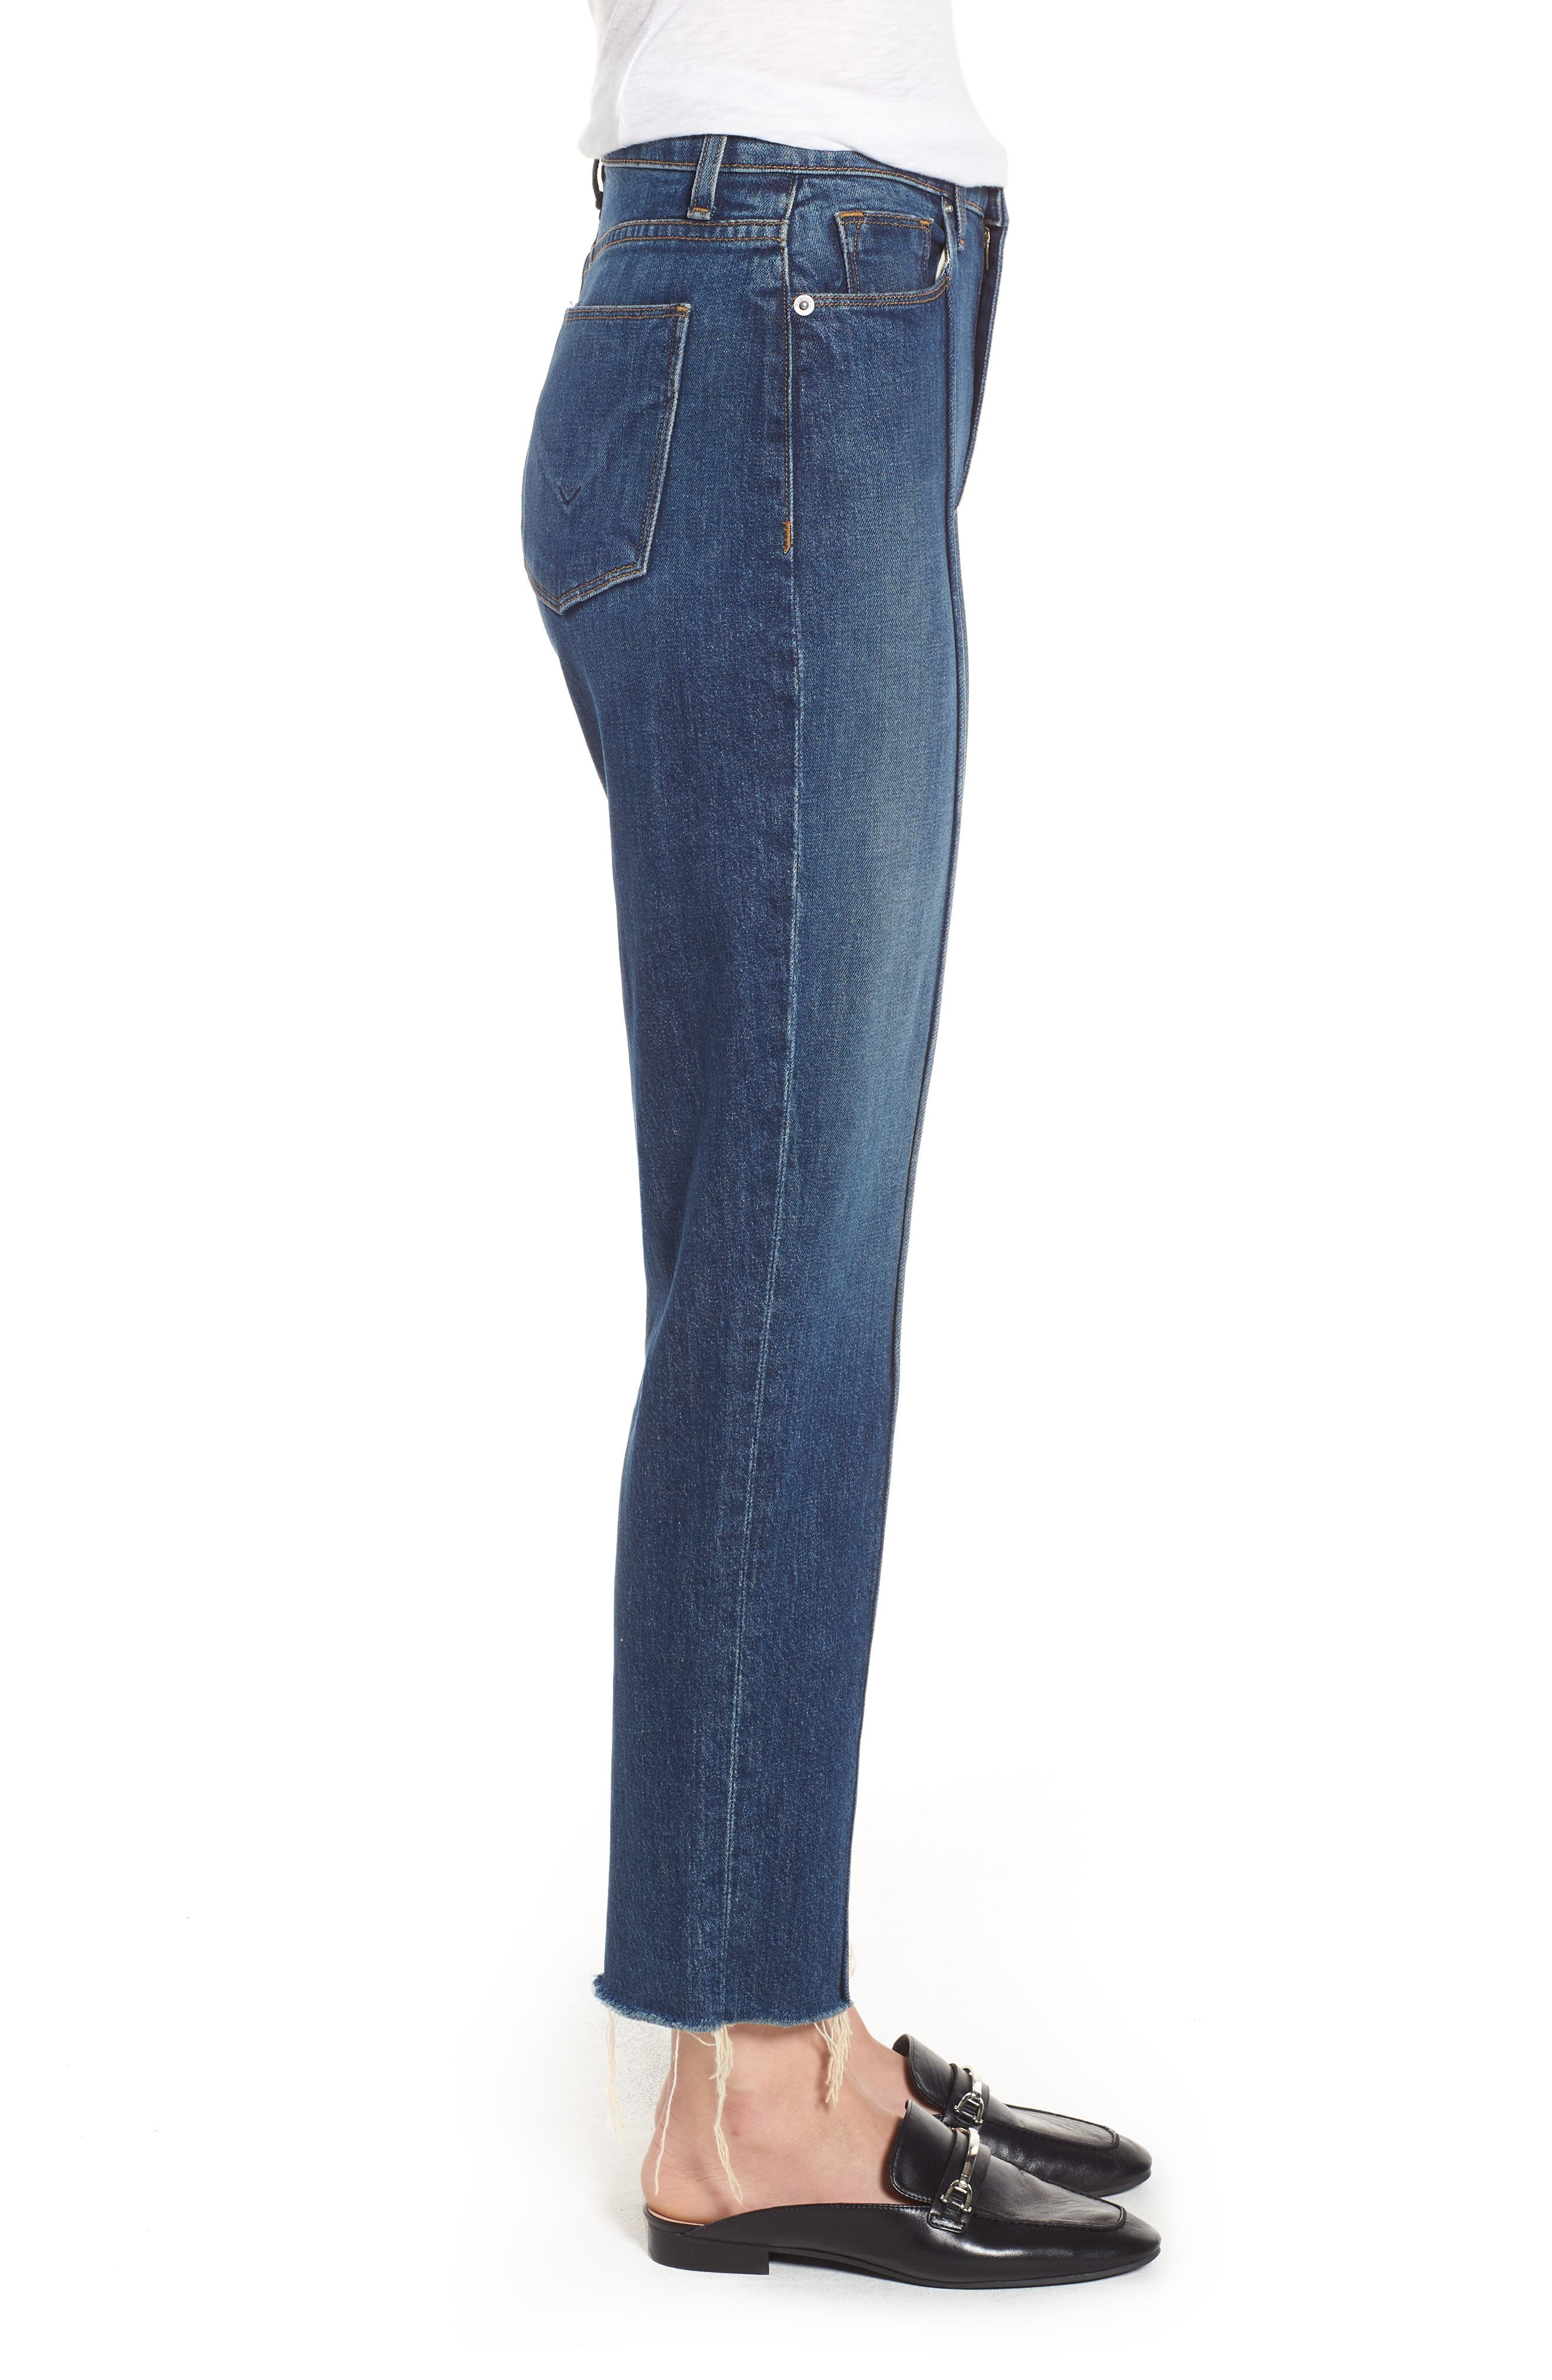 Zoeey High Waist Crop Straight Leg Jeans,                             Alternate thumbnail 3, color,                             Demeanor